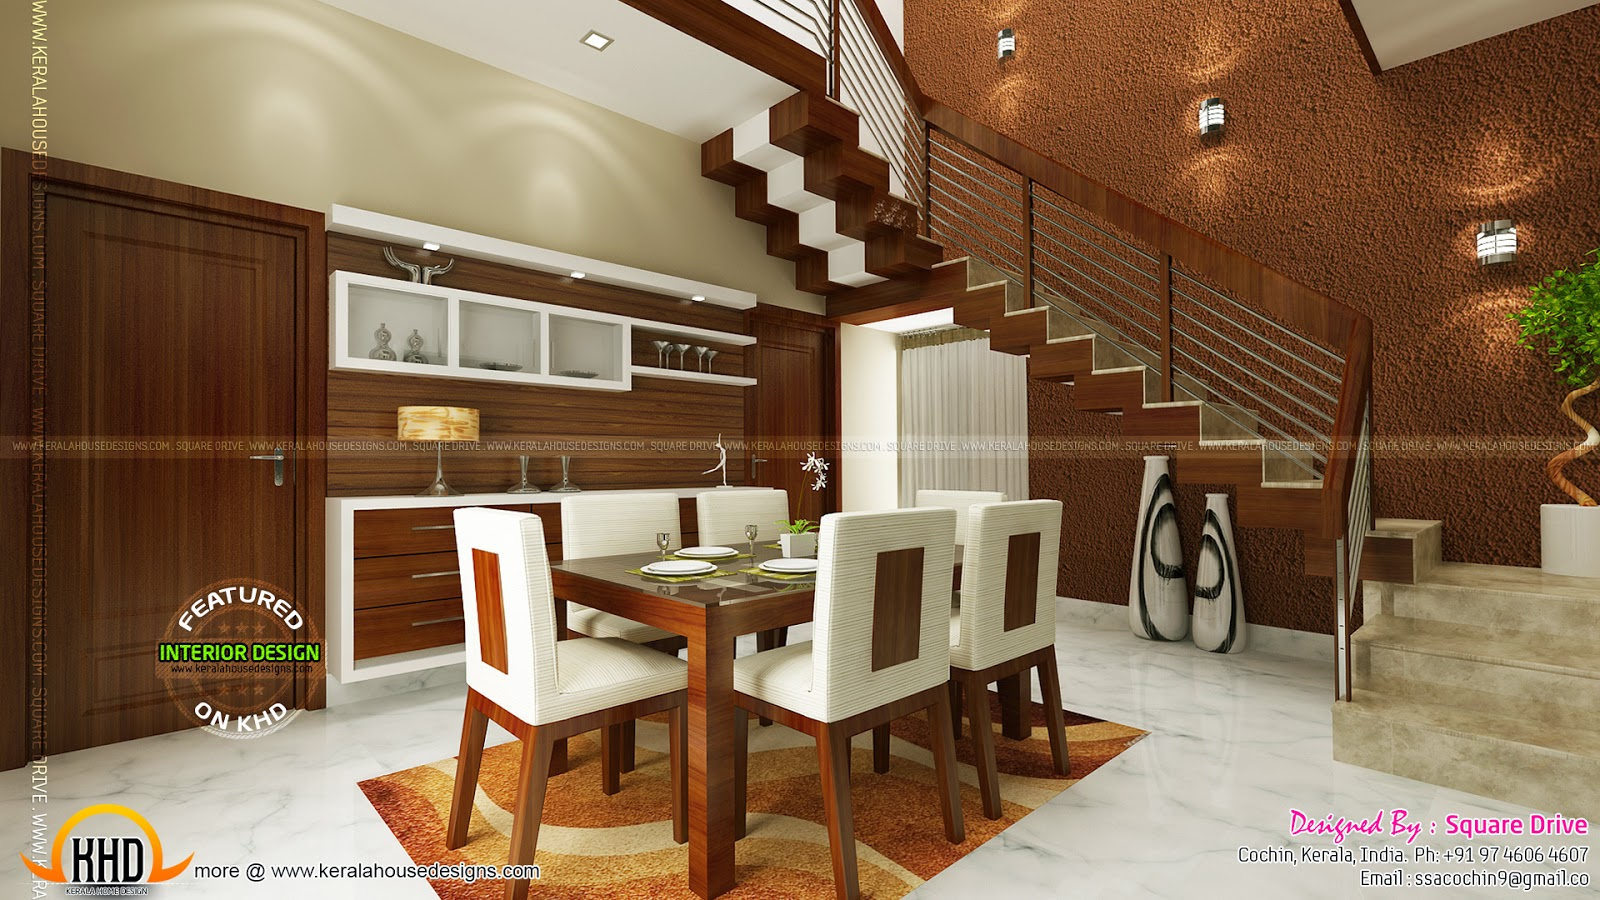 Cochin interior design kerala home design and floor plans for Interior design for hall and dining room